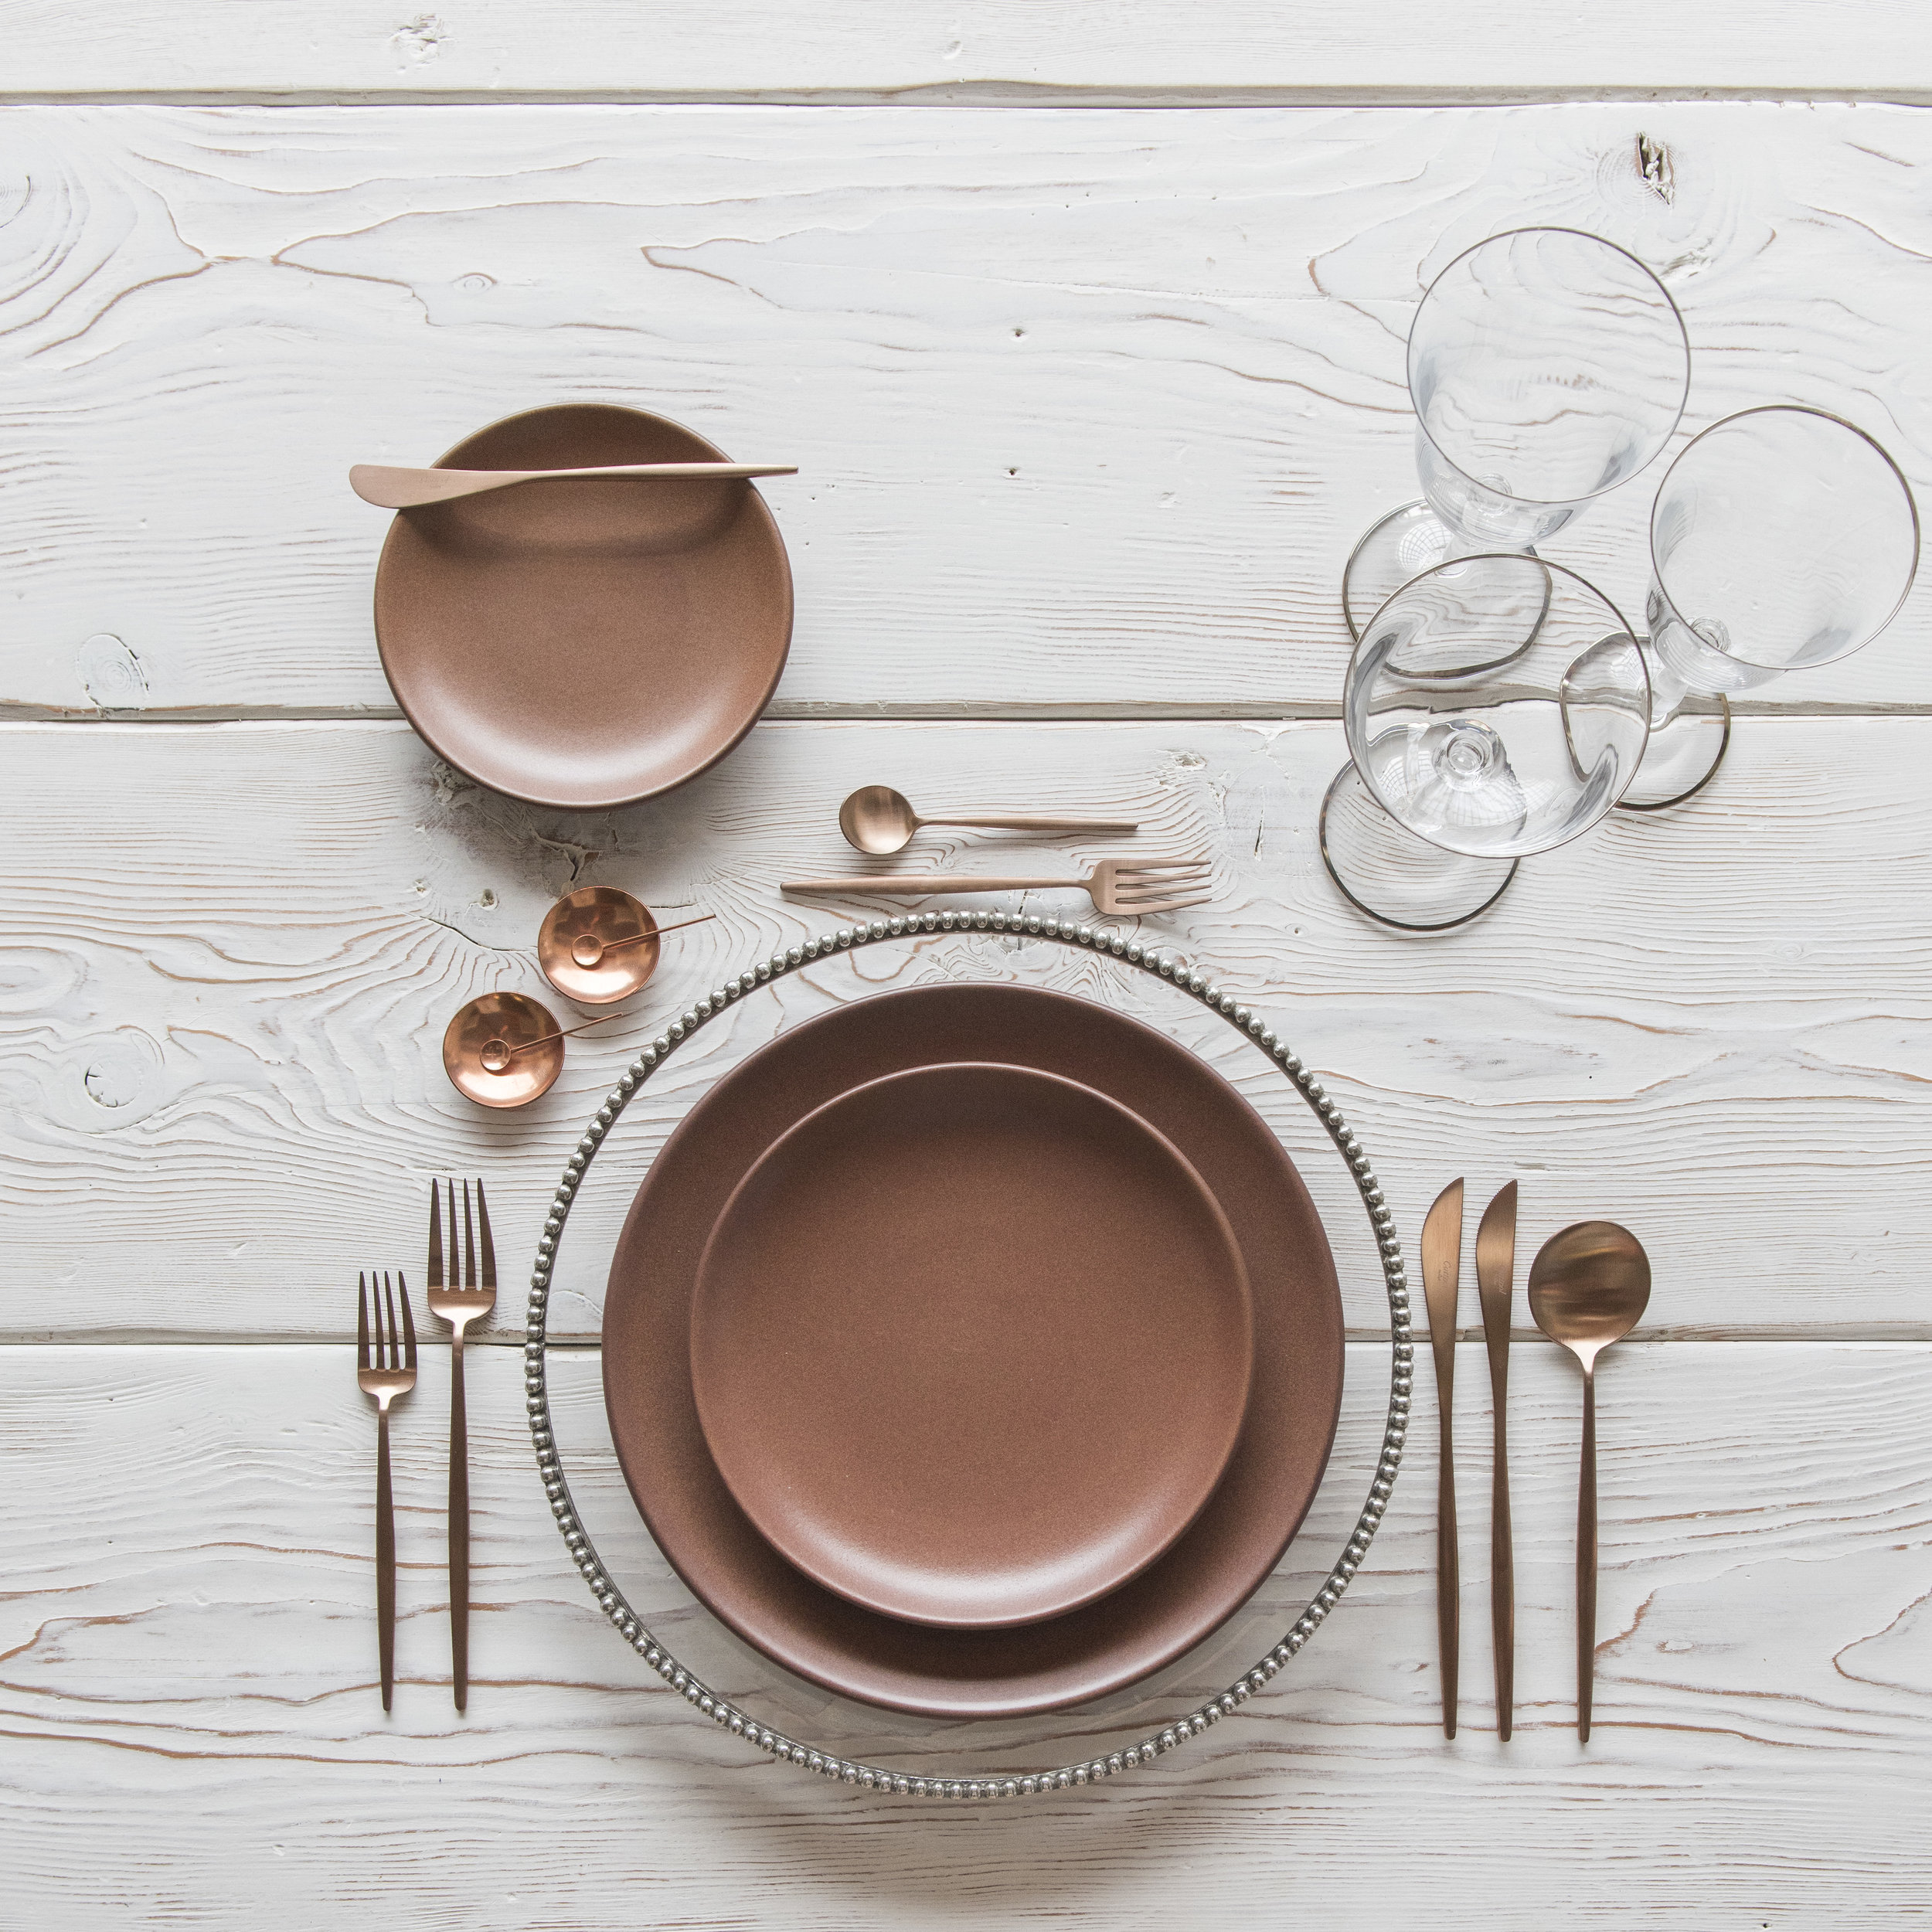 RENT: Halo Glass Chargers in Platinum + Heath Ceramics in Redwood + Moon Flatware in Brushed Rose Gold + Chloe Platinum Rimmed Stemware + Copper Salt Cellars + Tiny Copper Spoons   SHOP: Halo Glass Chargers in Platinum + Moon Flatware in Brushed Rose Gold + Chloe Platinum Rimmed Stemware + Copper Salt Cellars + Tiny Copper Spoons